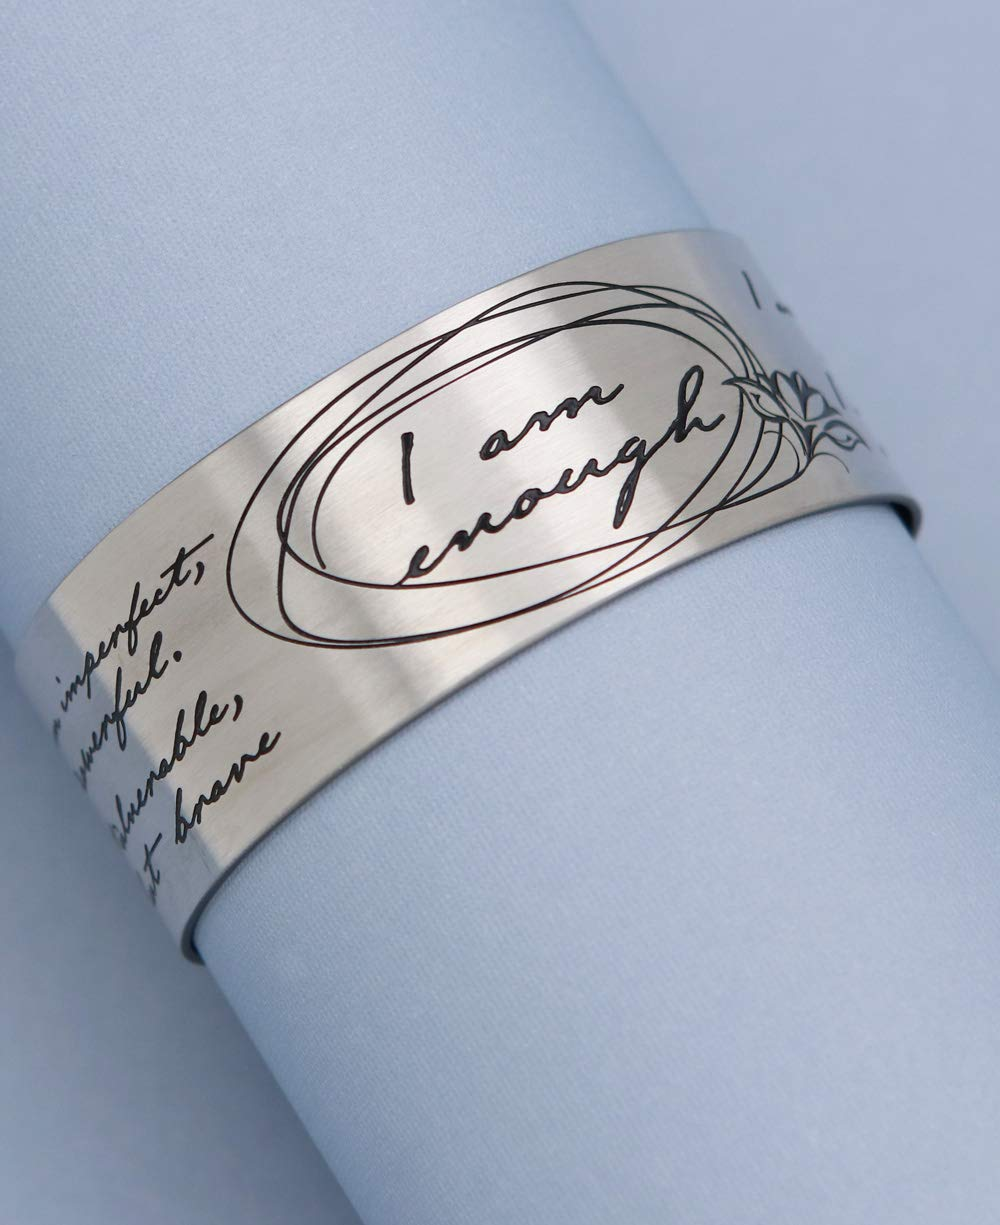 Vera Viva I Am Enough Artistic Calligraphy Adjustable Cuff Bracelet | Made of Stainless Steel | Open Designs Fit Most Wrist Size | Cuff Size 6.5 Inches by Vera Viva (Image #5)